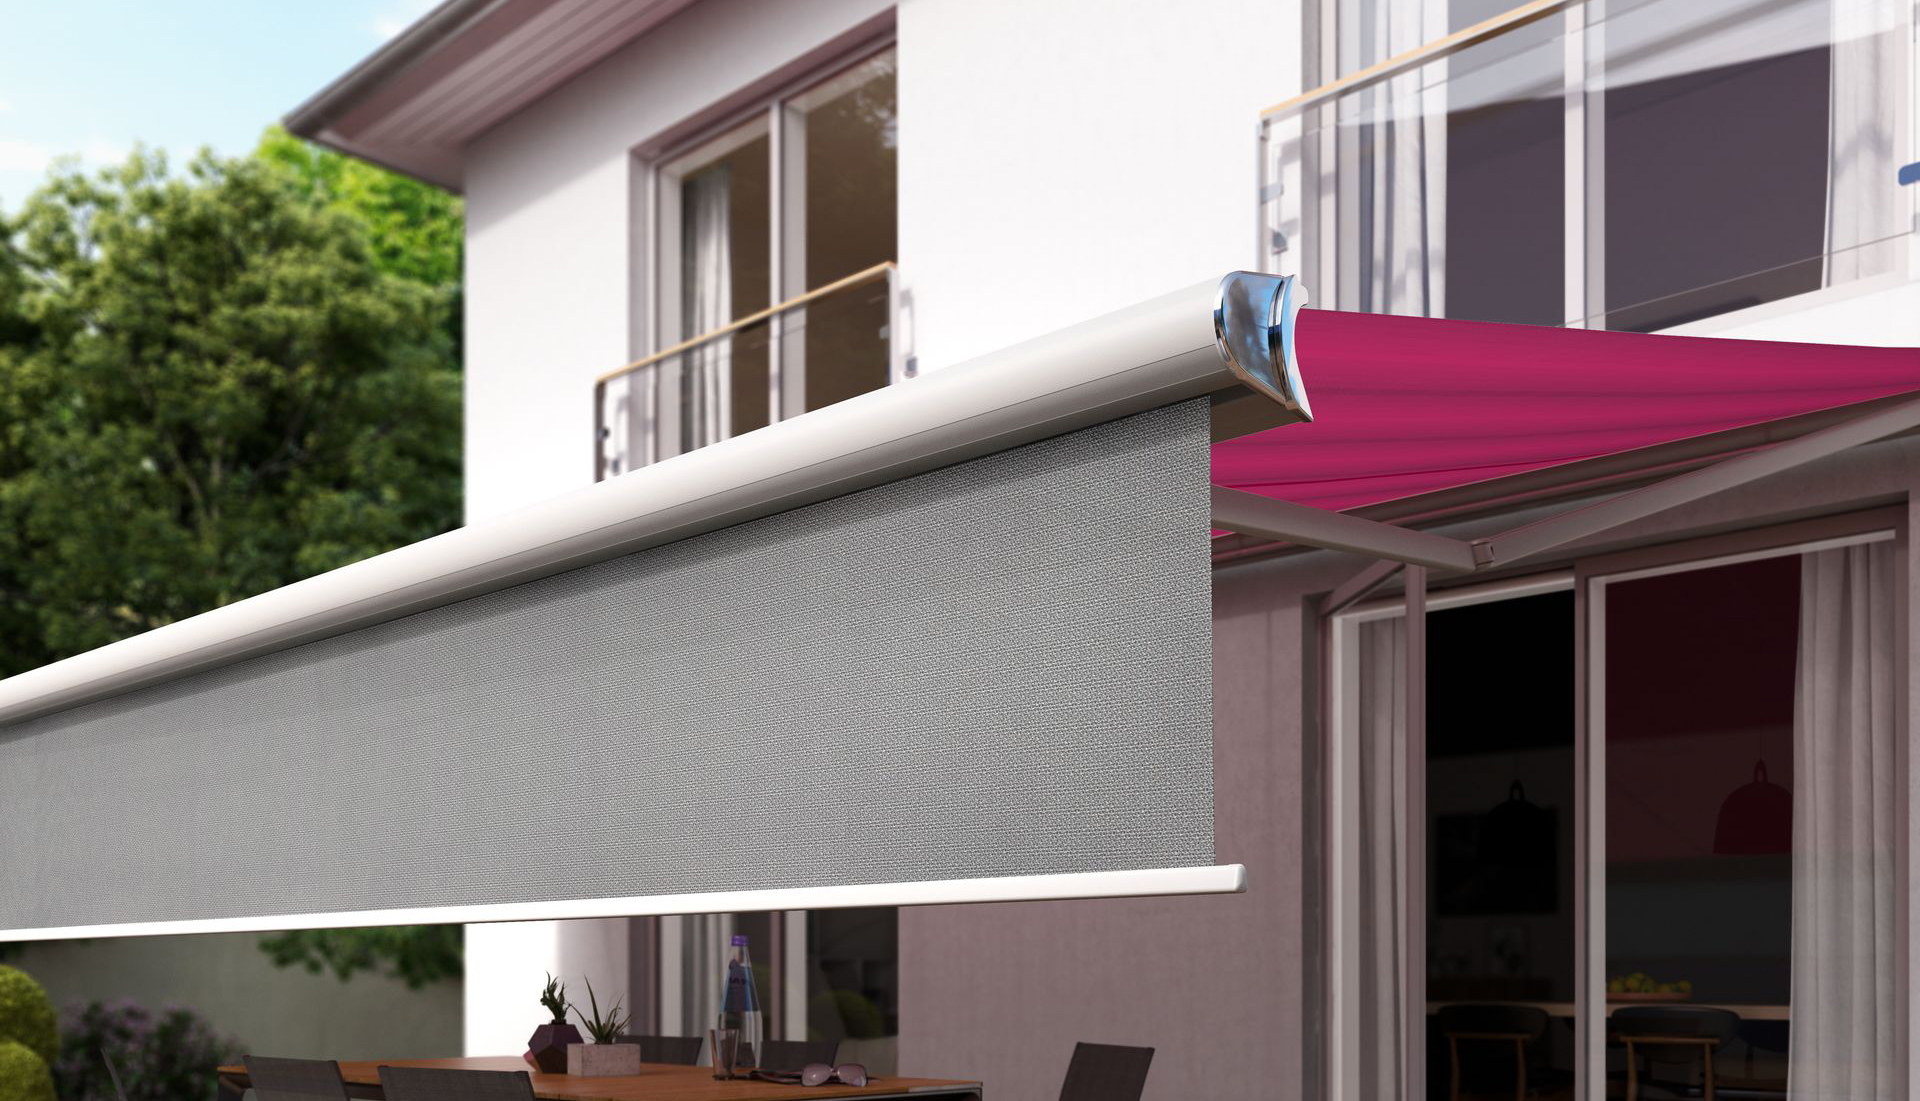 new arrival 6760e a61c5 Awnings For The Home | Retractable Awnings, All Weather ...